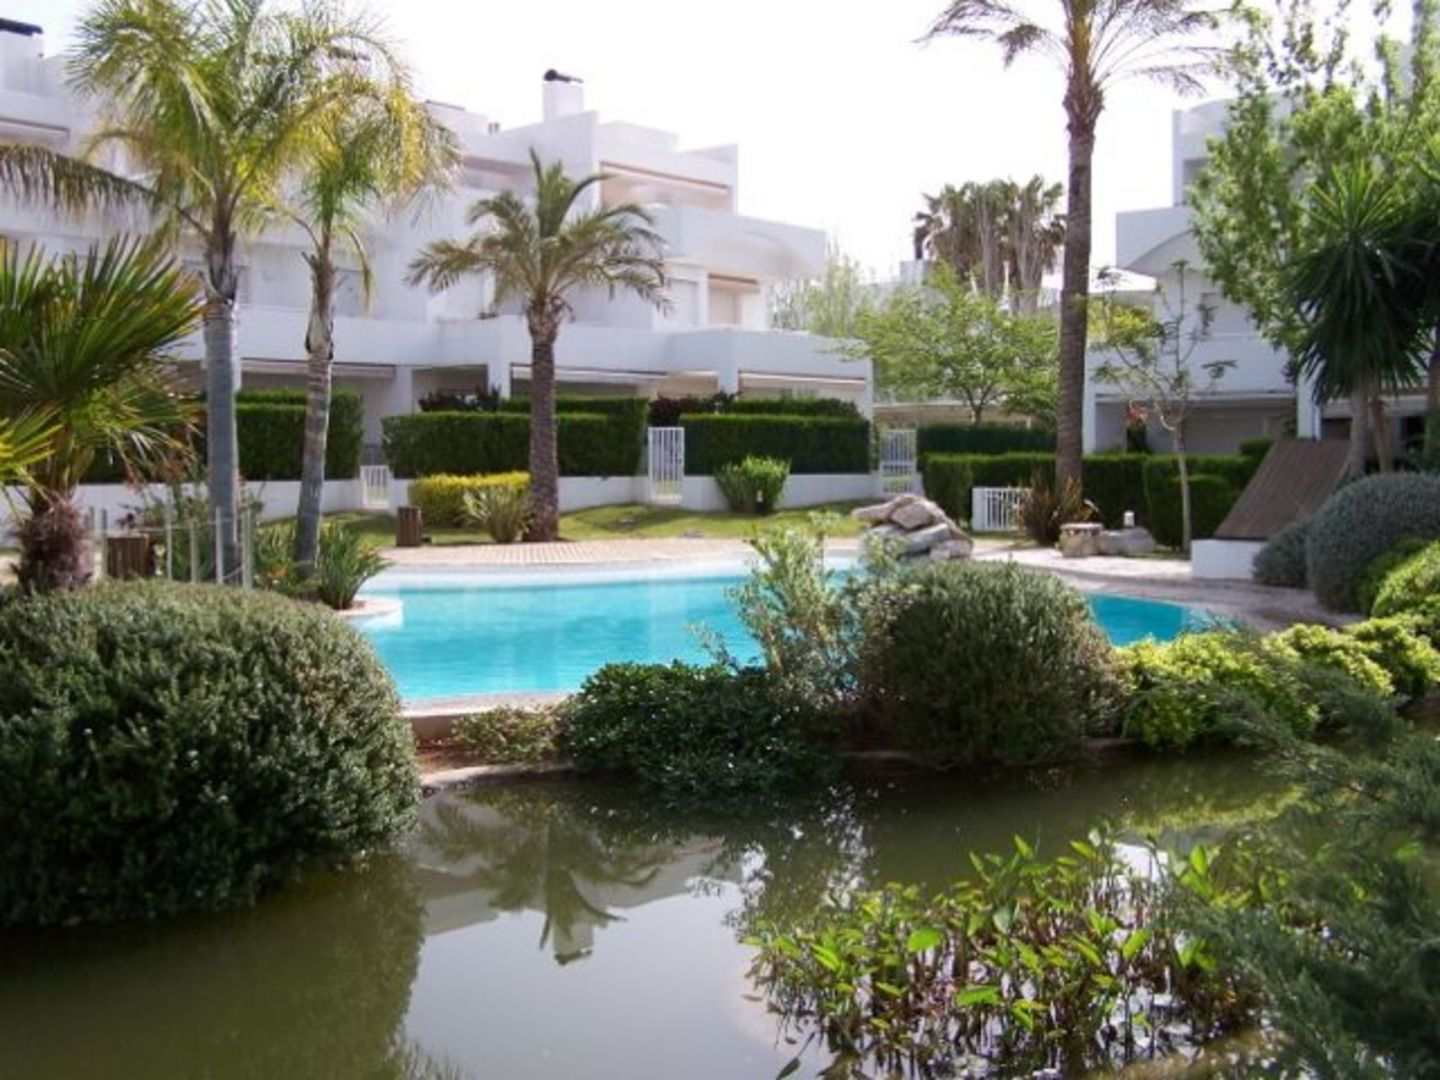 4 Bed Townhouse for sale in PUERTO POLLENSA 2